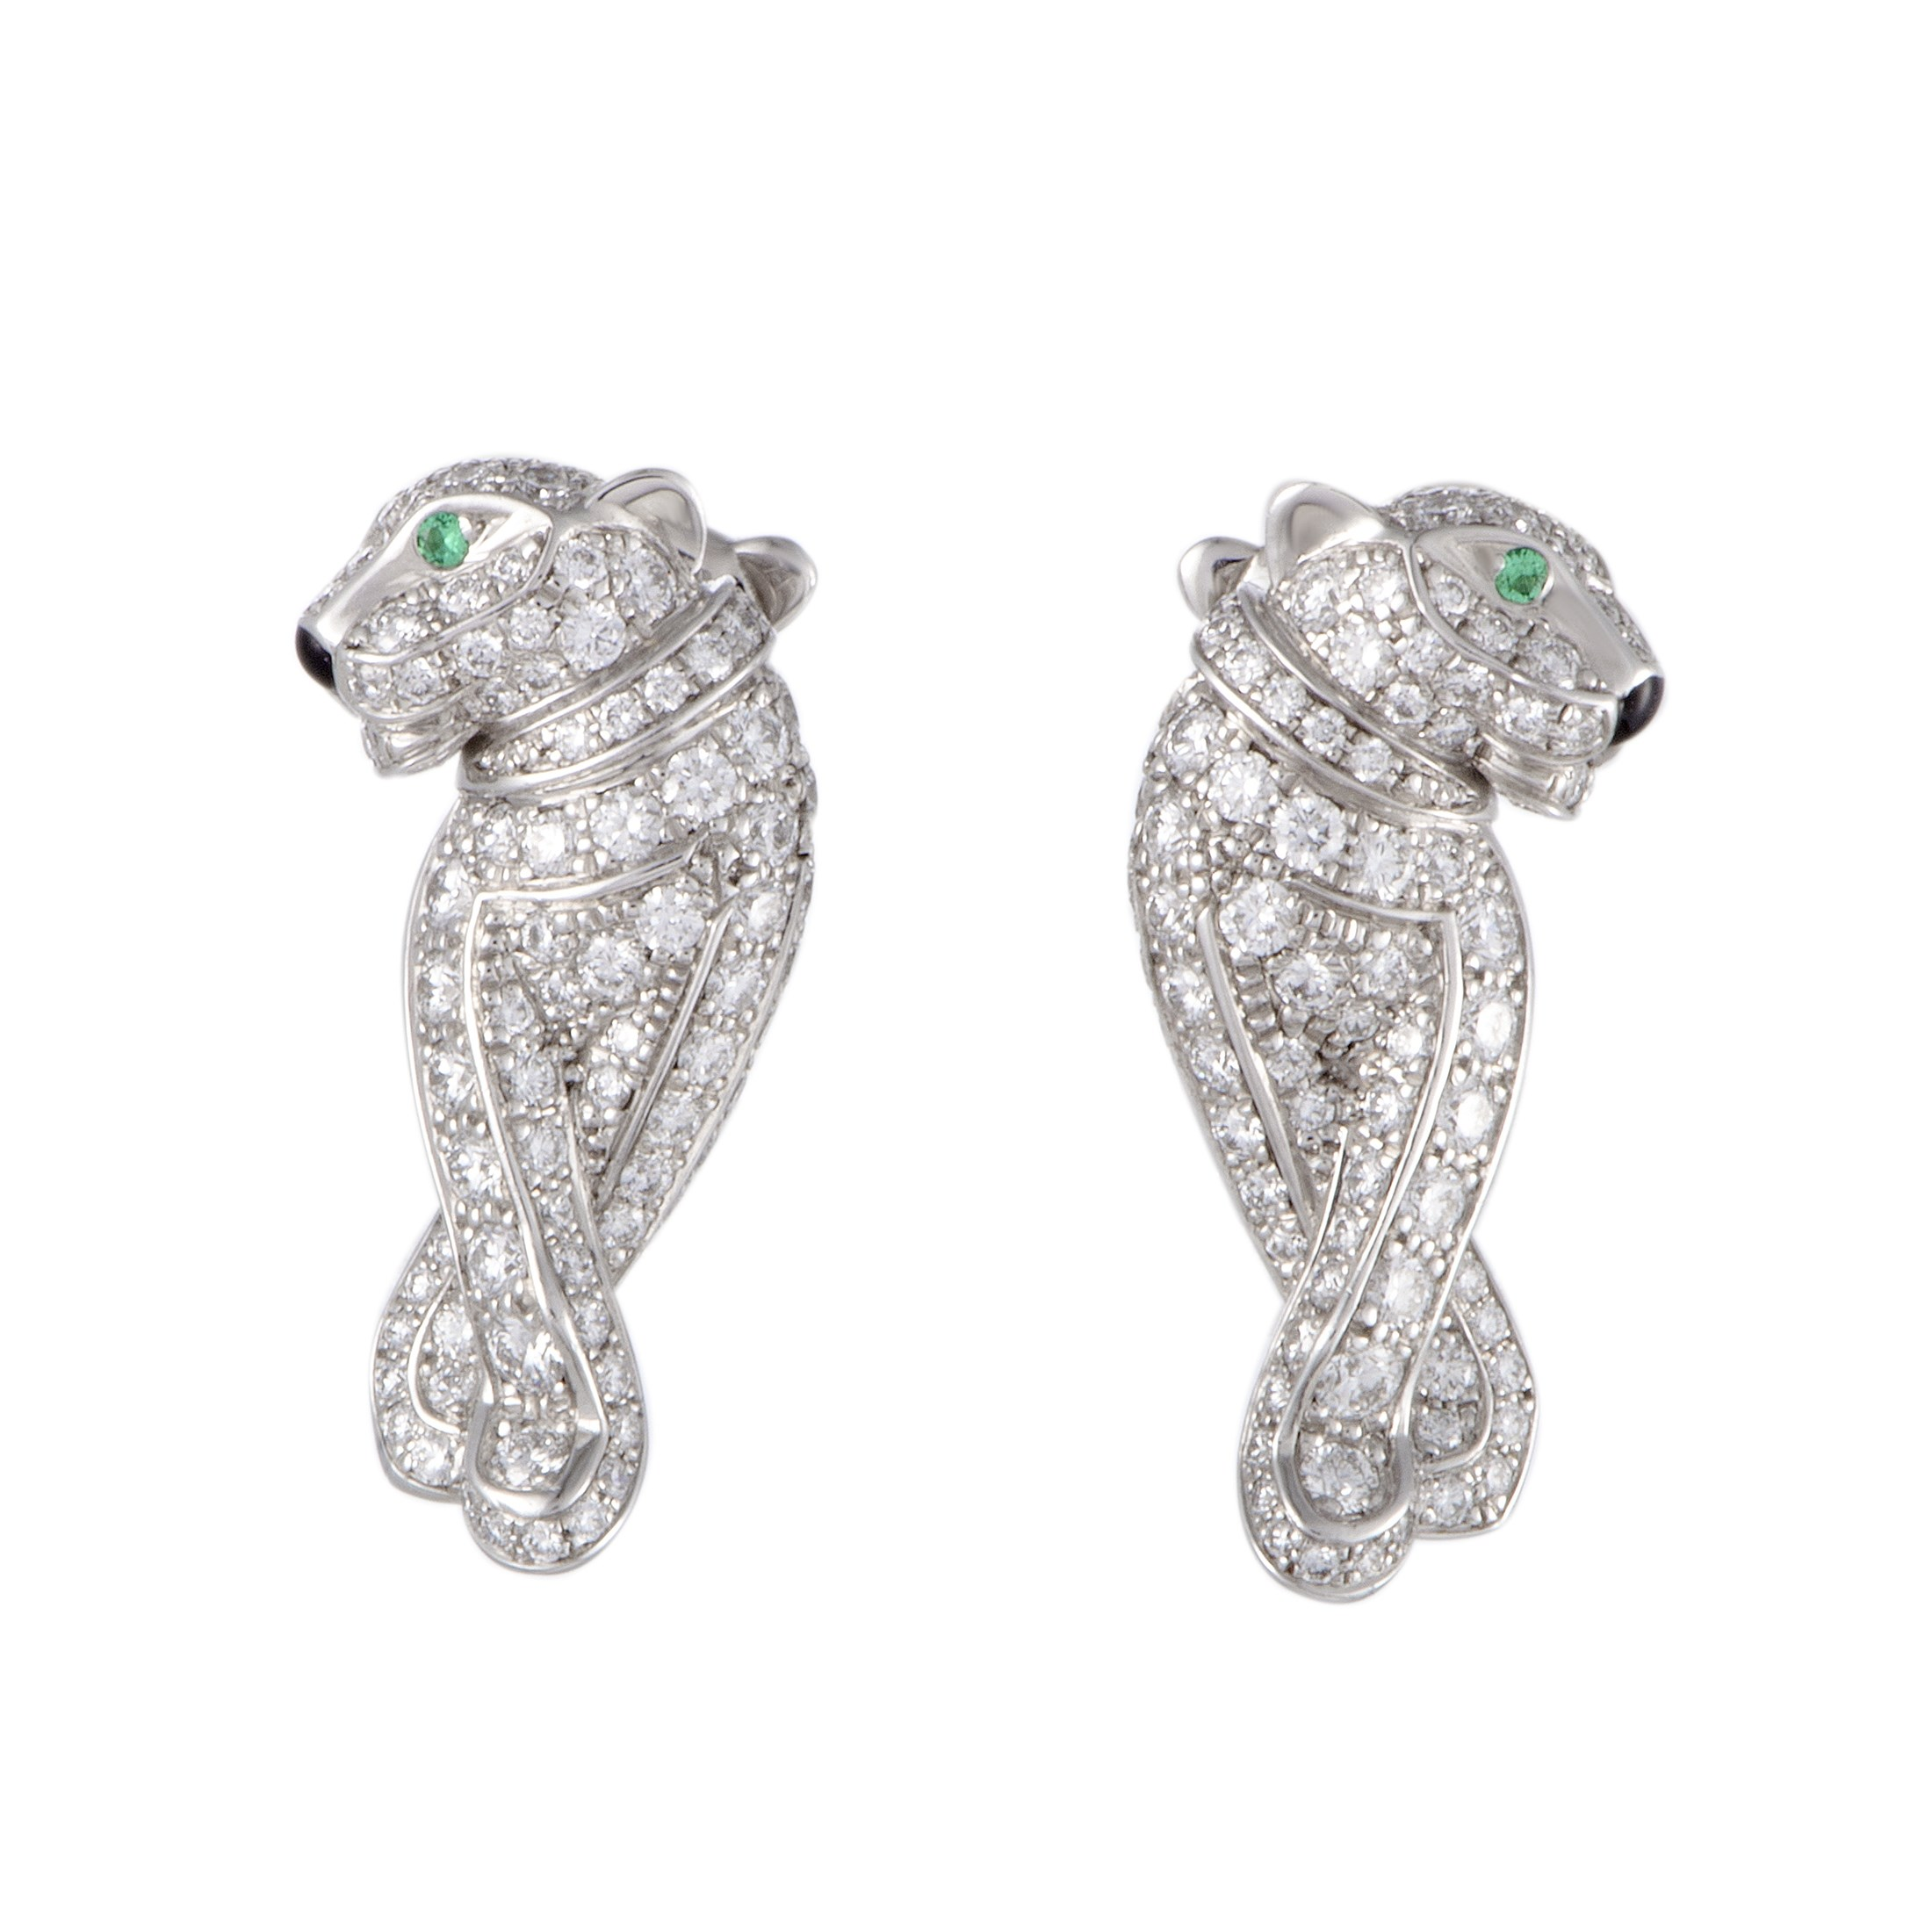 Cartier Panthere 18k White Gold 0 66ct Diamond And Emerald Earrings At Truefacet